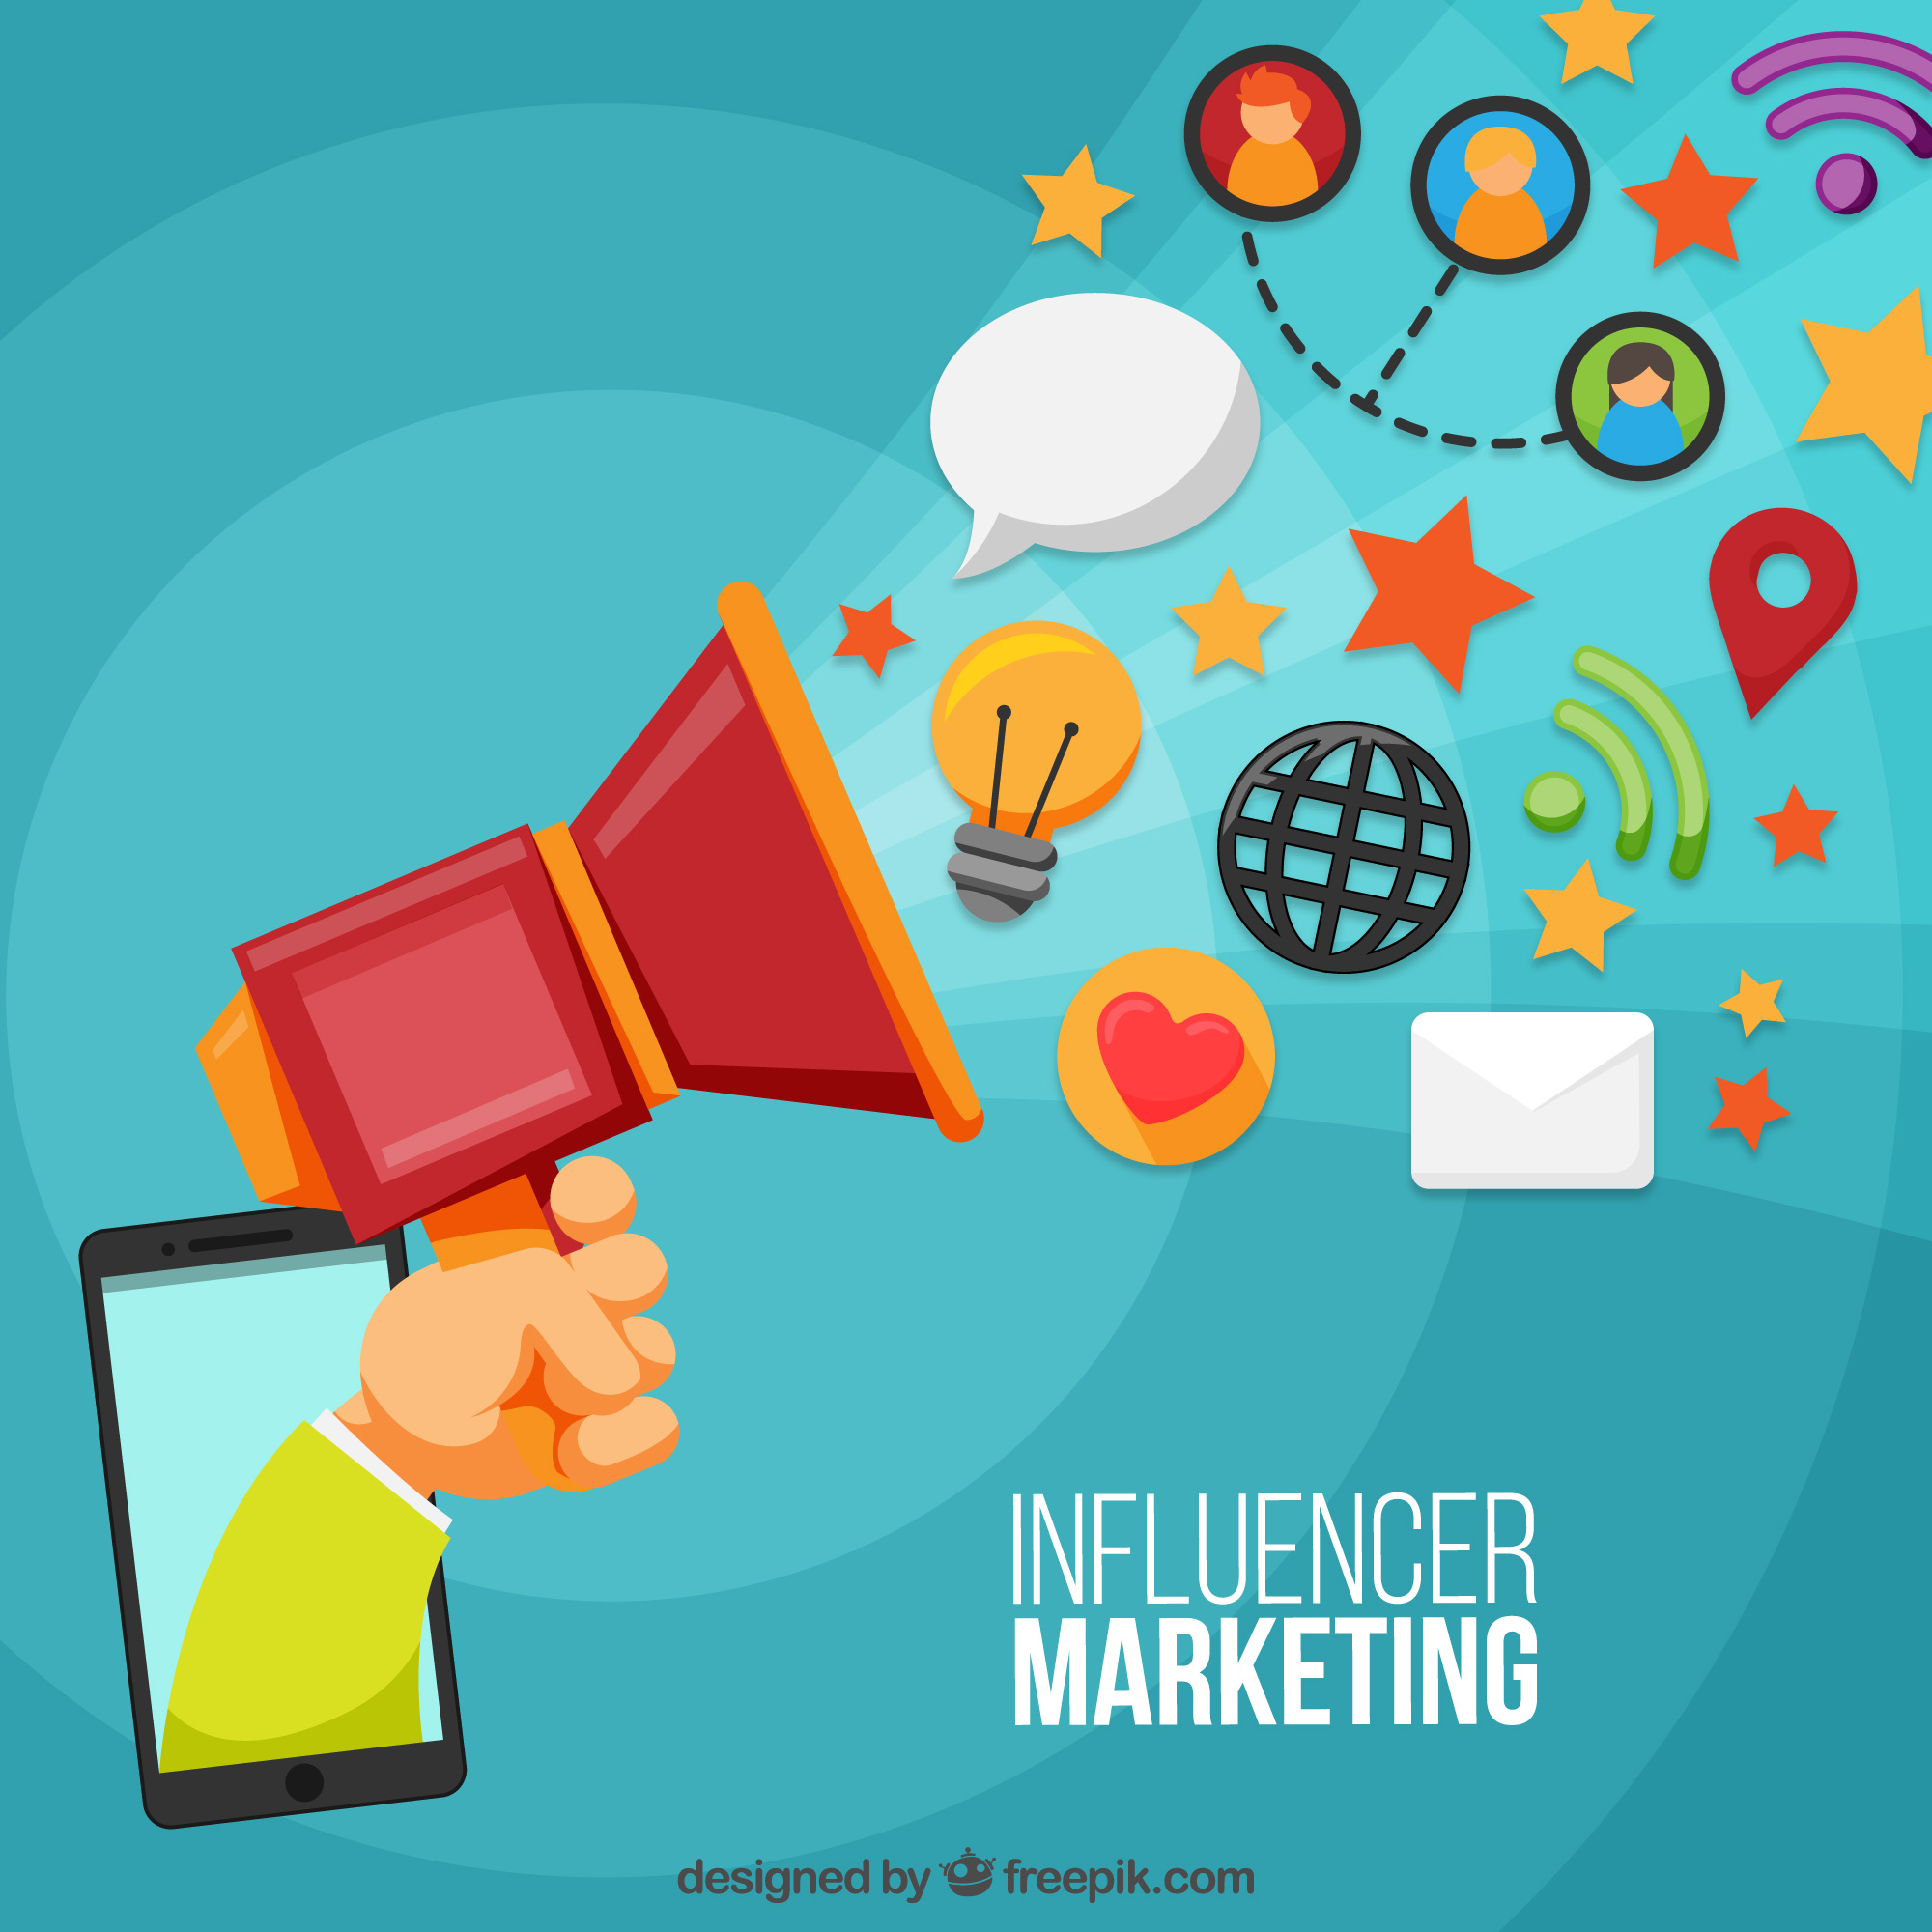 Influencer Marketing - What's It All About?